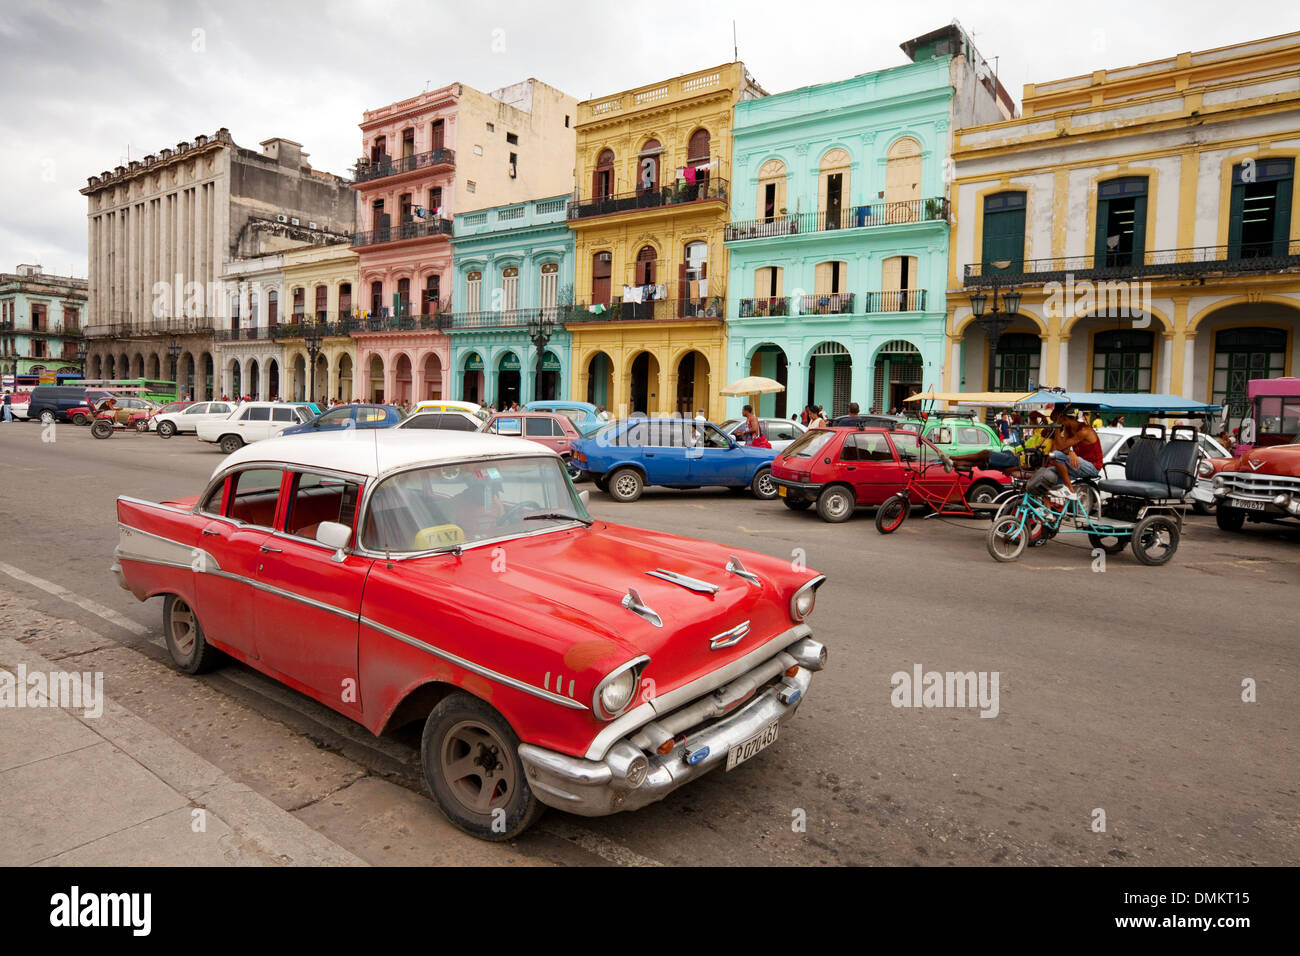 Old American Cars On The Street In Front Of Colorful